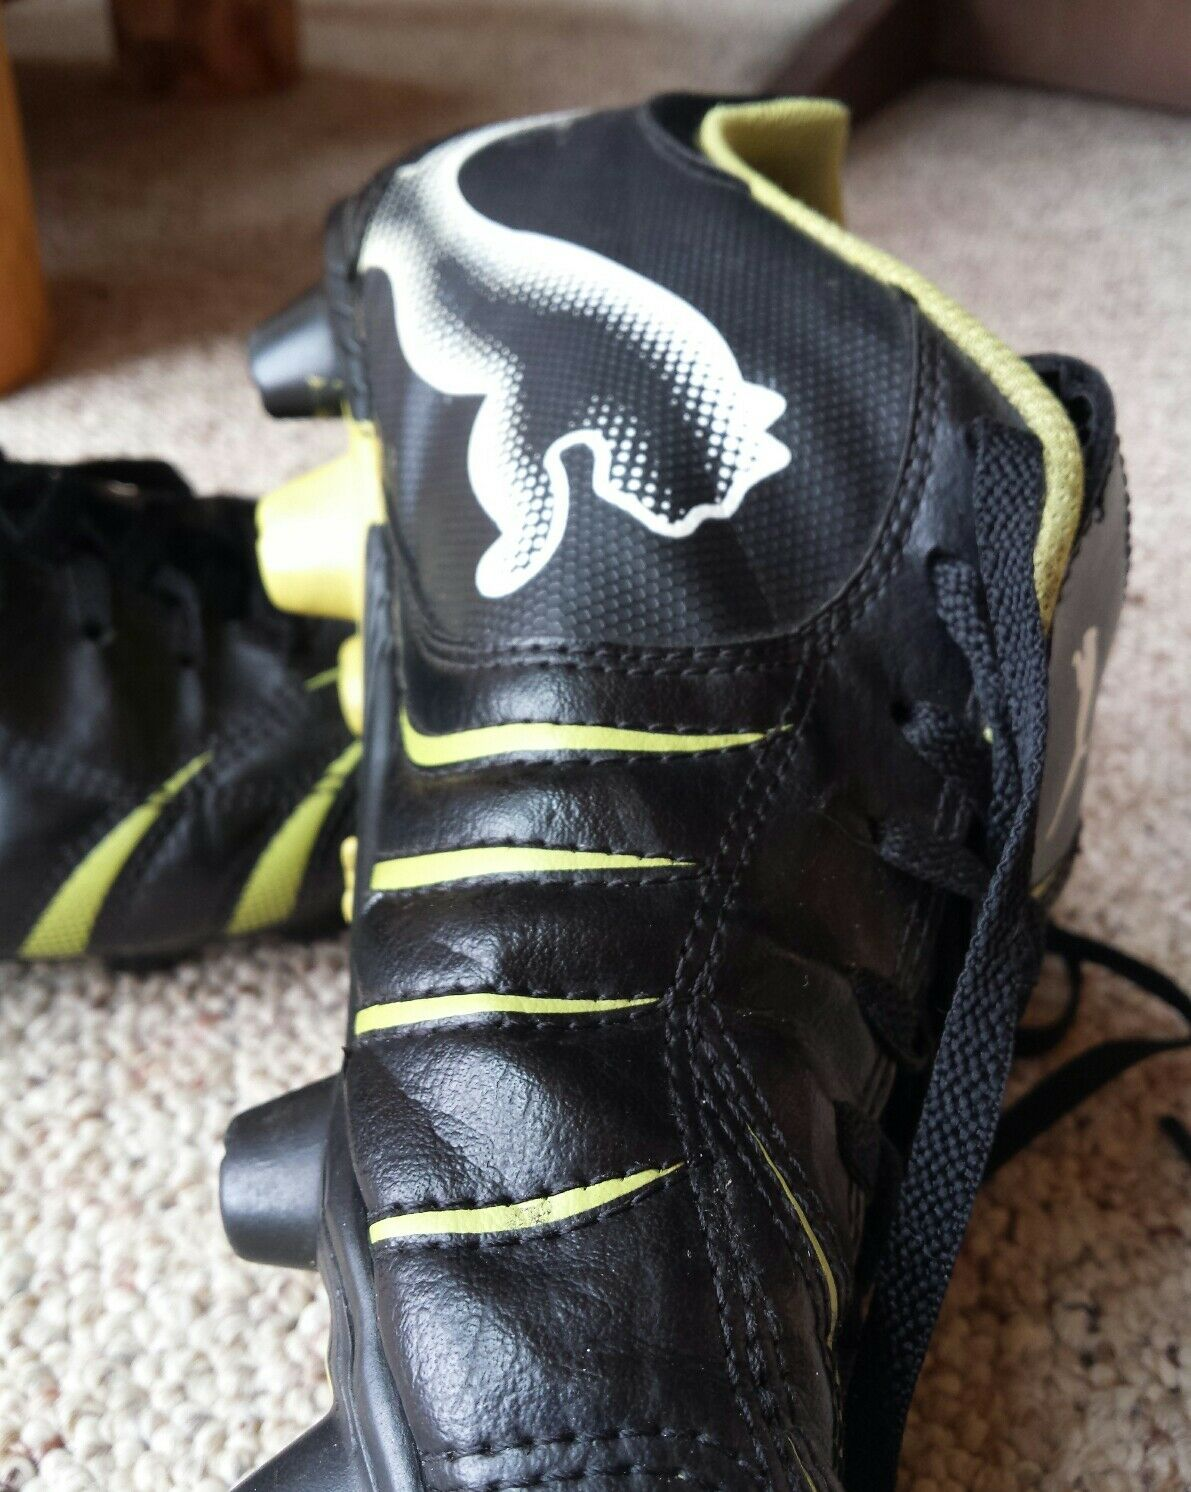 VTG VTG VTG Puma Black Leather Duoflex Mens Cleat shoes Neon Green Cat Stripes 10 - 10.5 ed8527